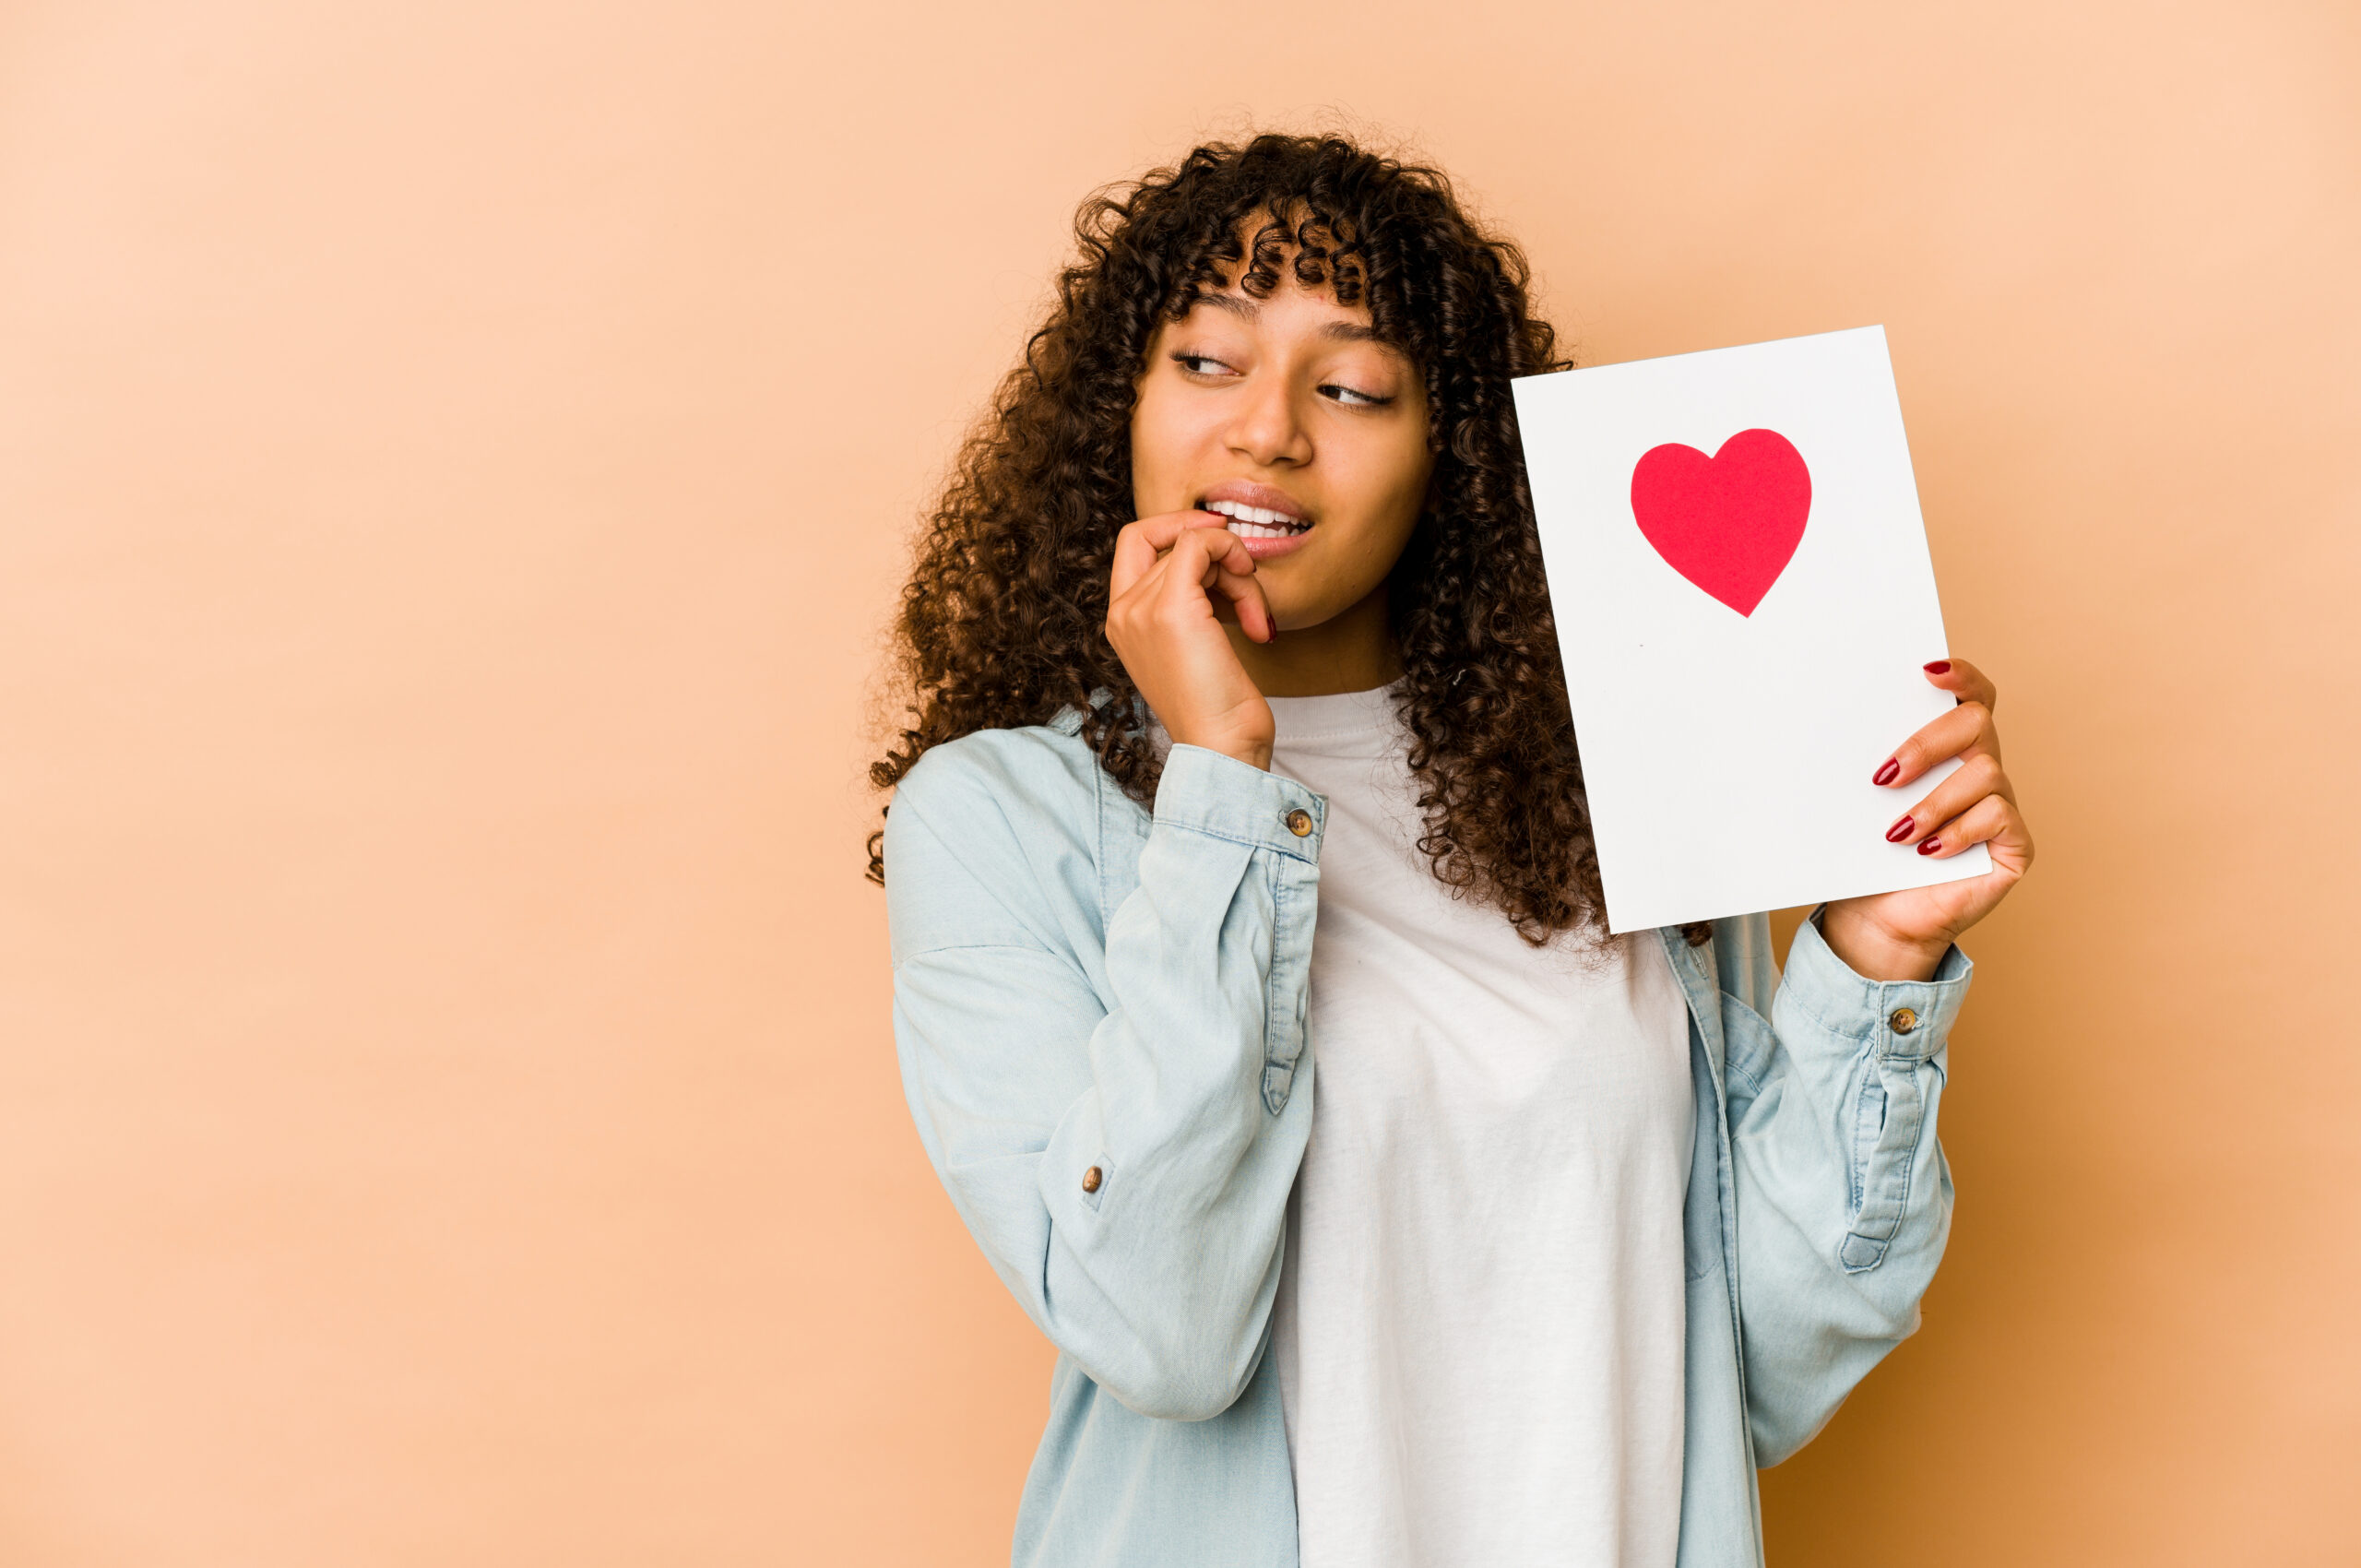 self-care-black-woman-holding-a-valentines-day-card-standing-in-front-of-a-yellow-background